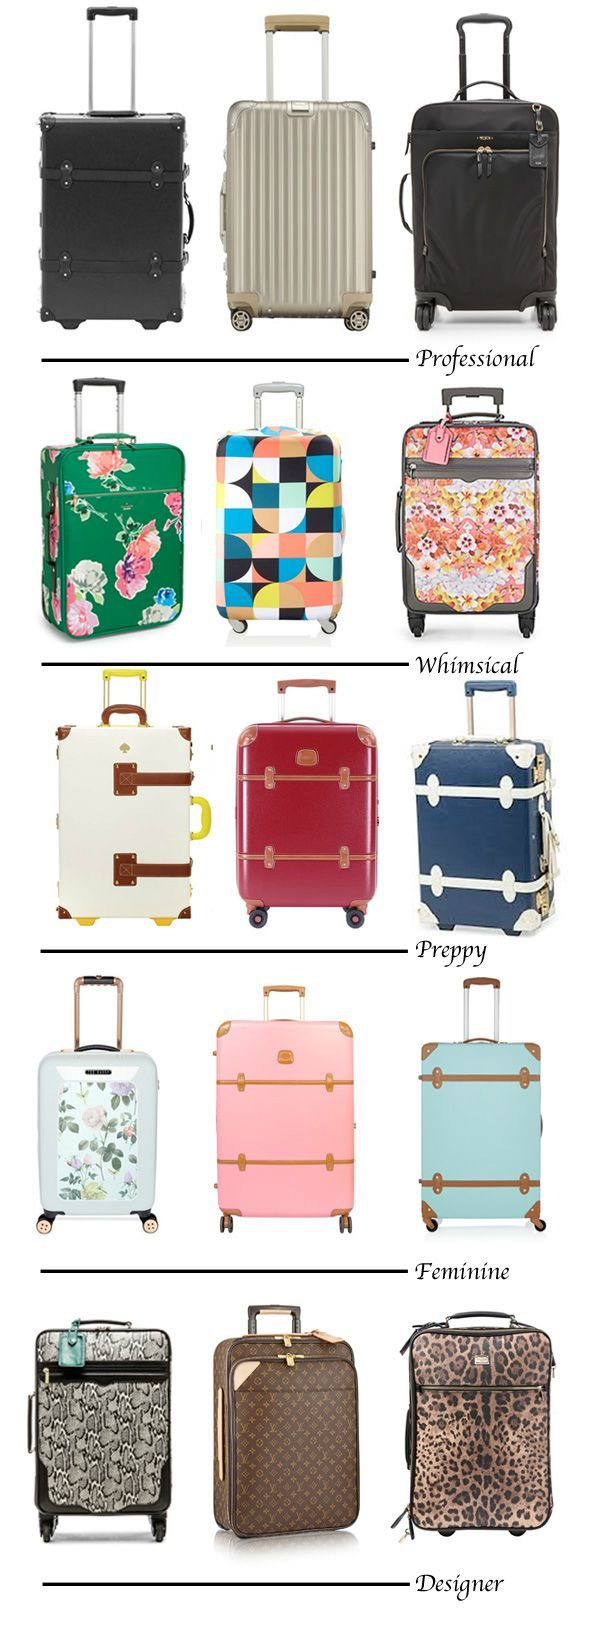 Stylish carry on luggage for every budget. If you're in the market for a cute, trendy suitcase, then this round up is for you!